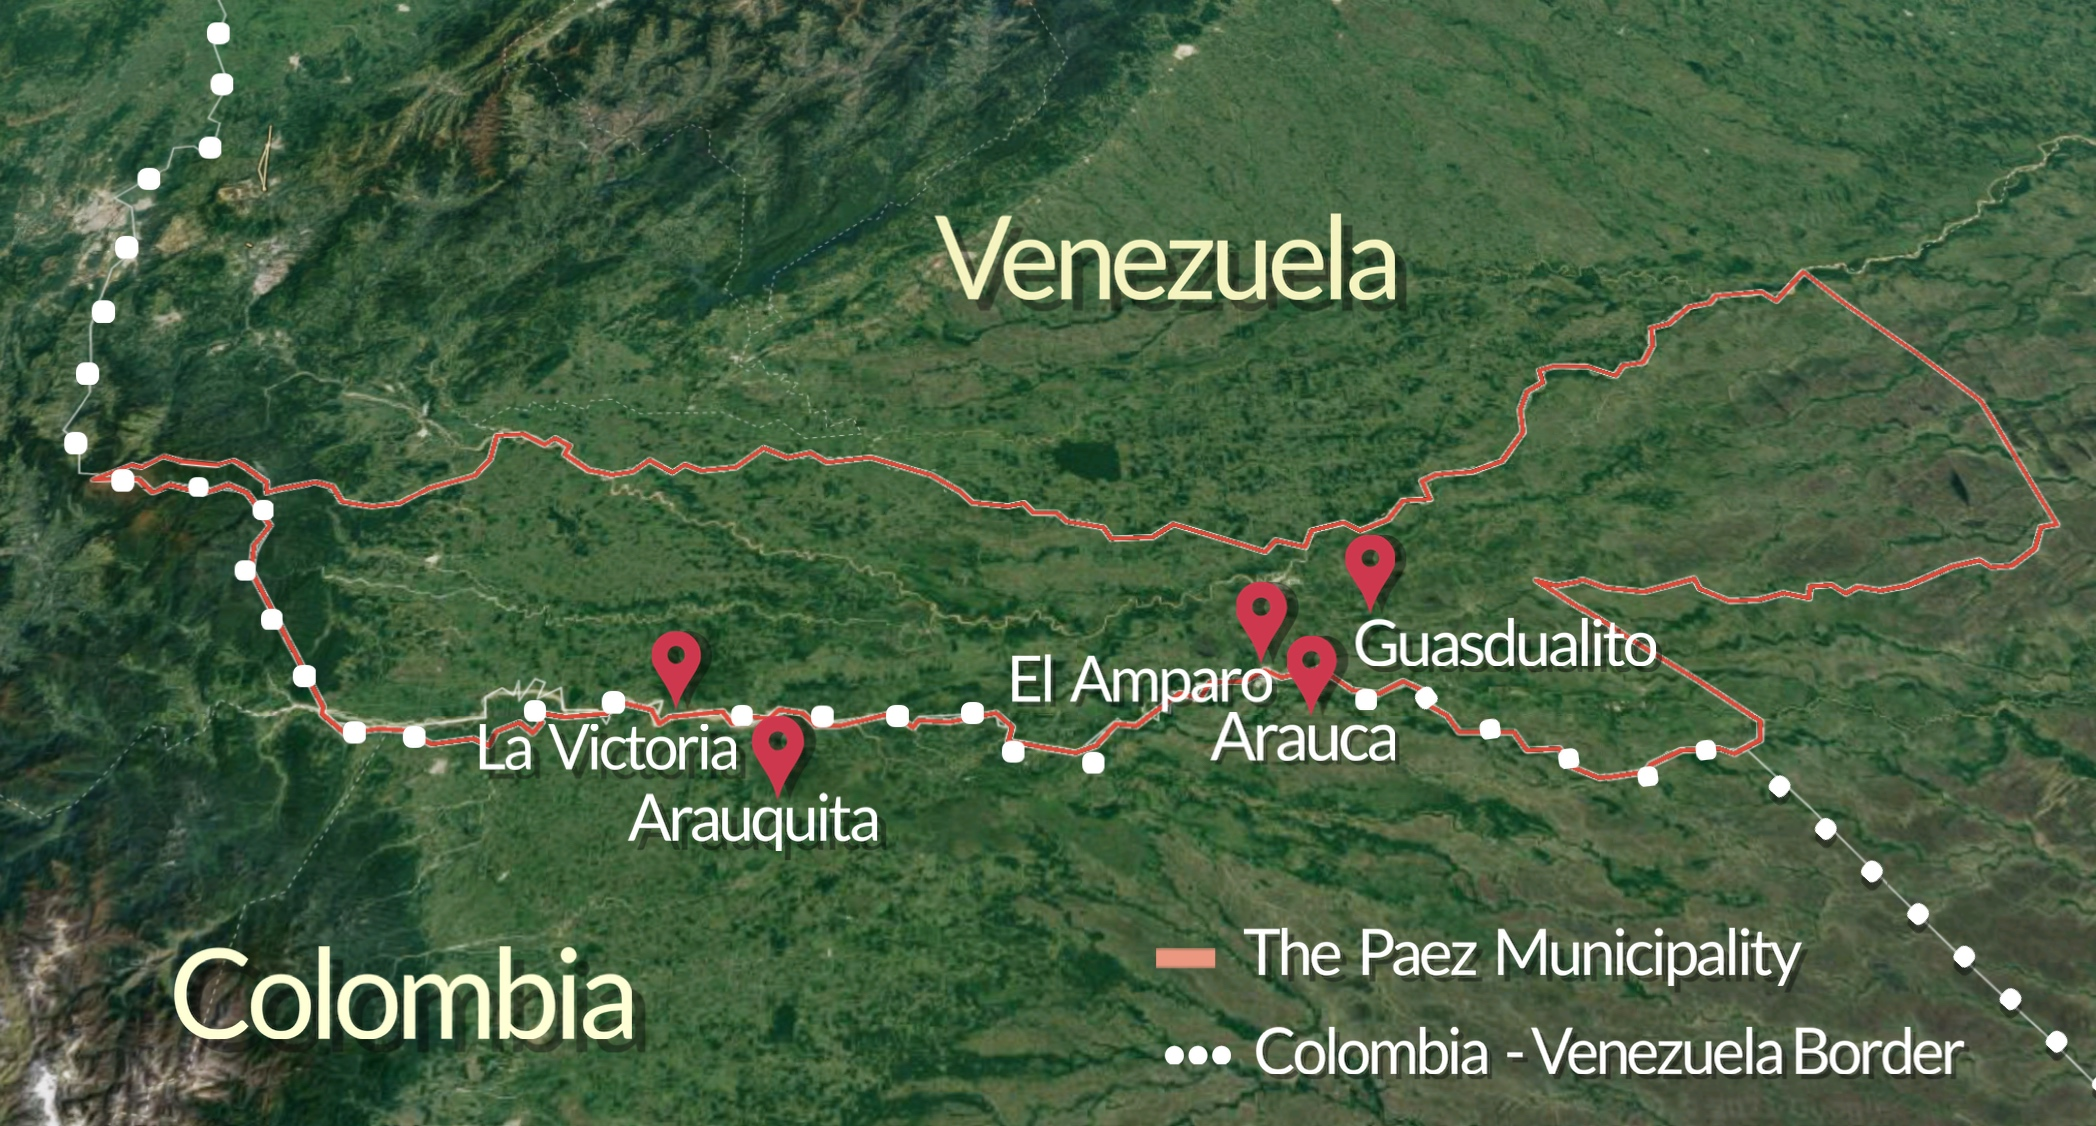 Combat on the Venezuela-Colombia Border: What We Know